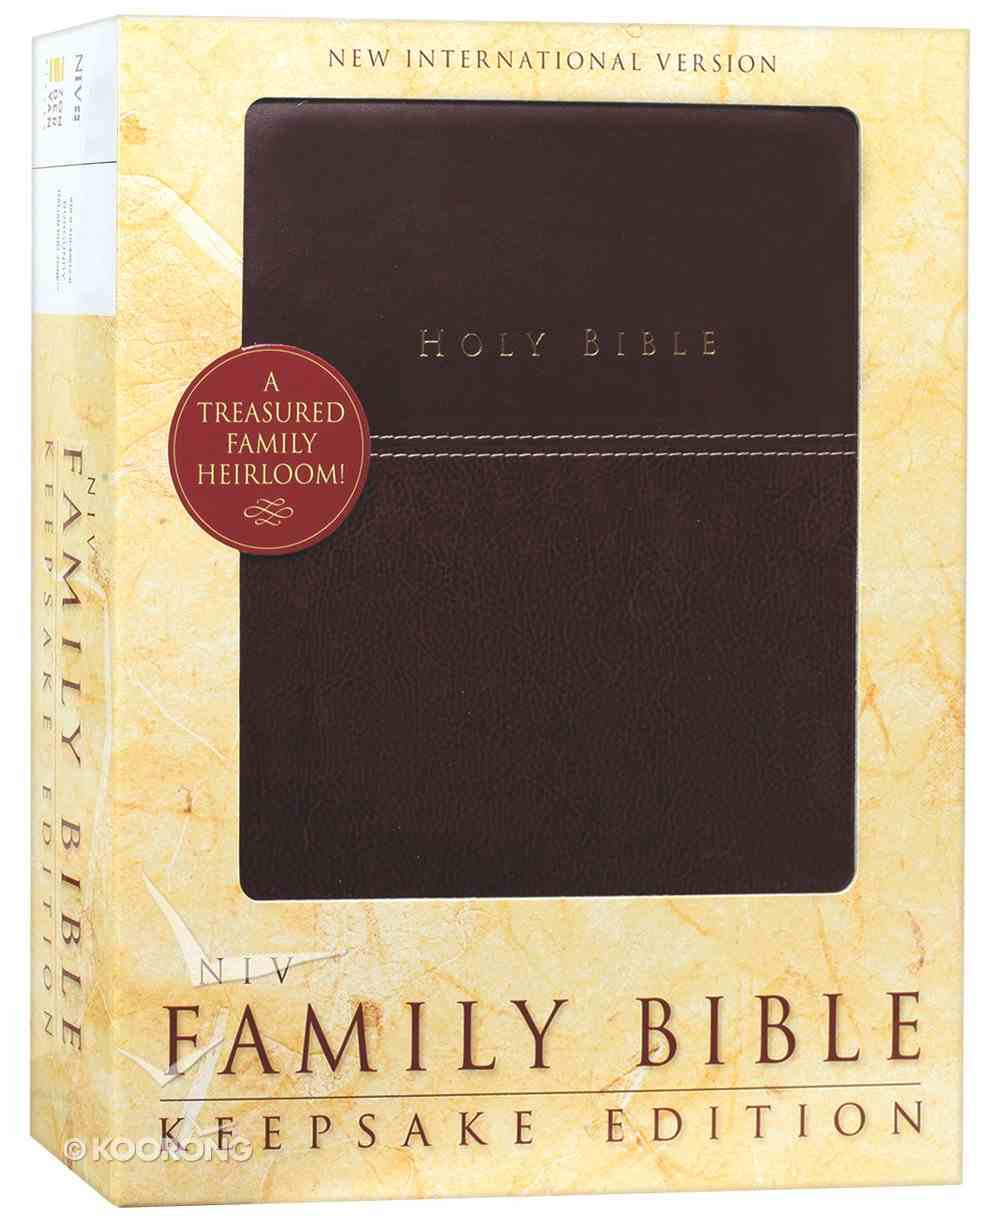 NIV Family Bible Keepsake Edition Burgundy (Red Letter Edition) Premium Imitation Leather